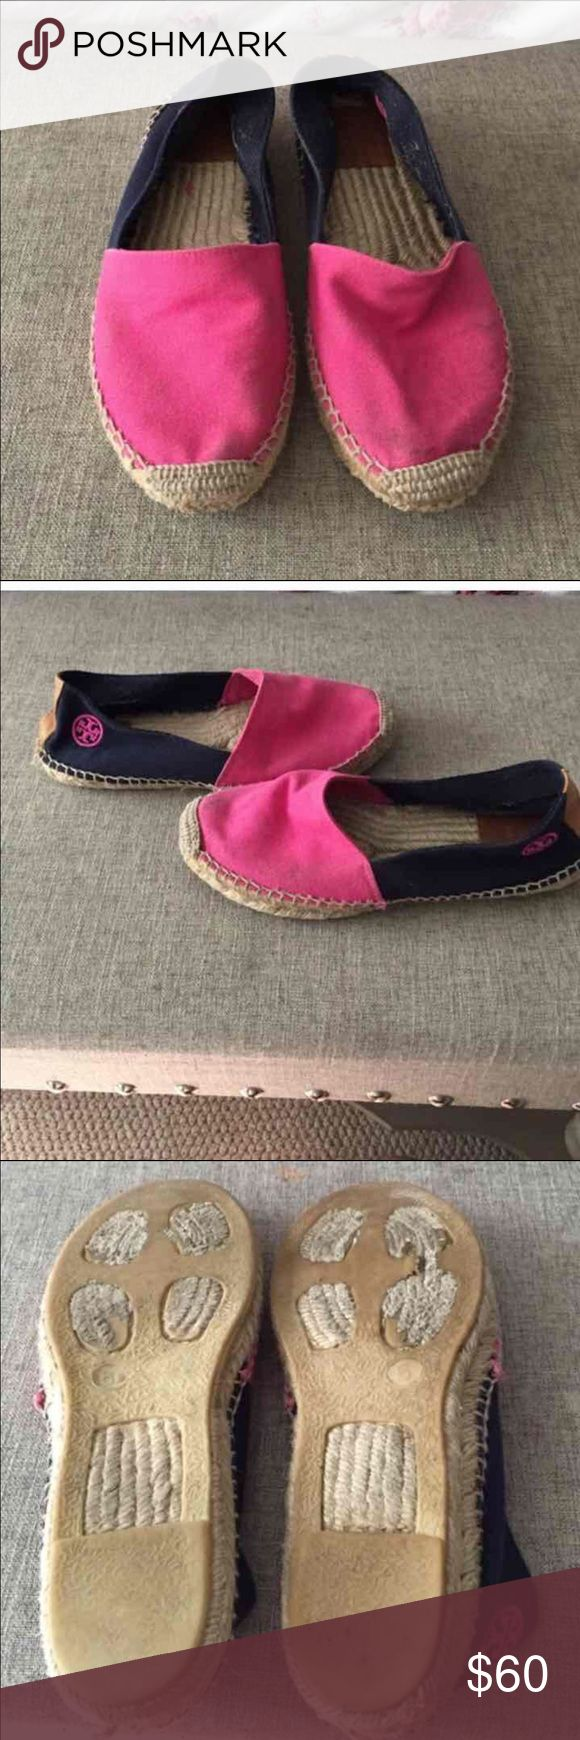 Tory Burch Pink Espadrilles Great used conditions. Does not include box. Open to trades Tory Burch Shoes Espadrilles